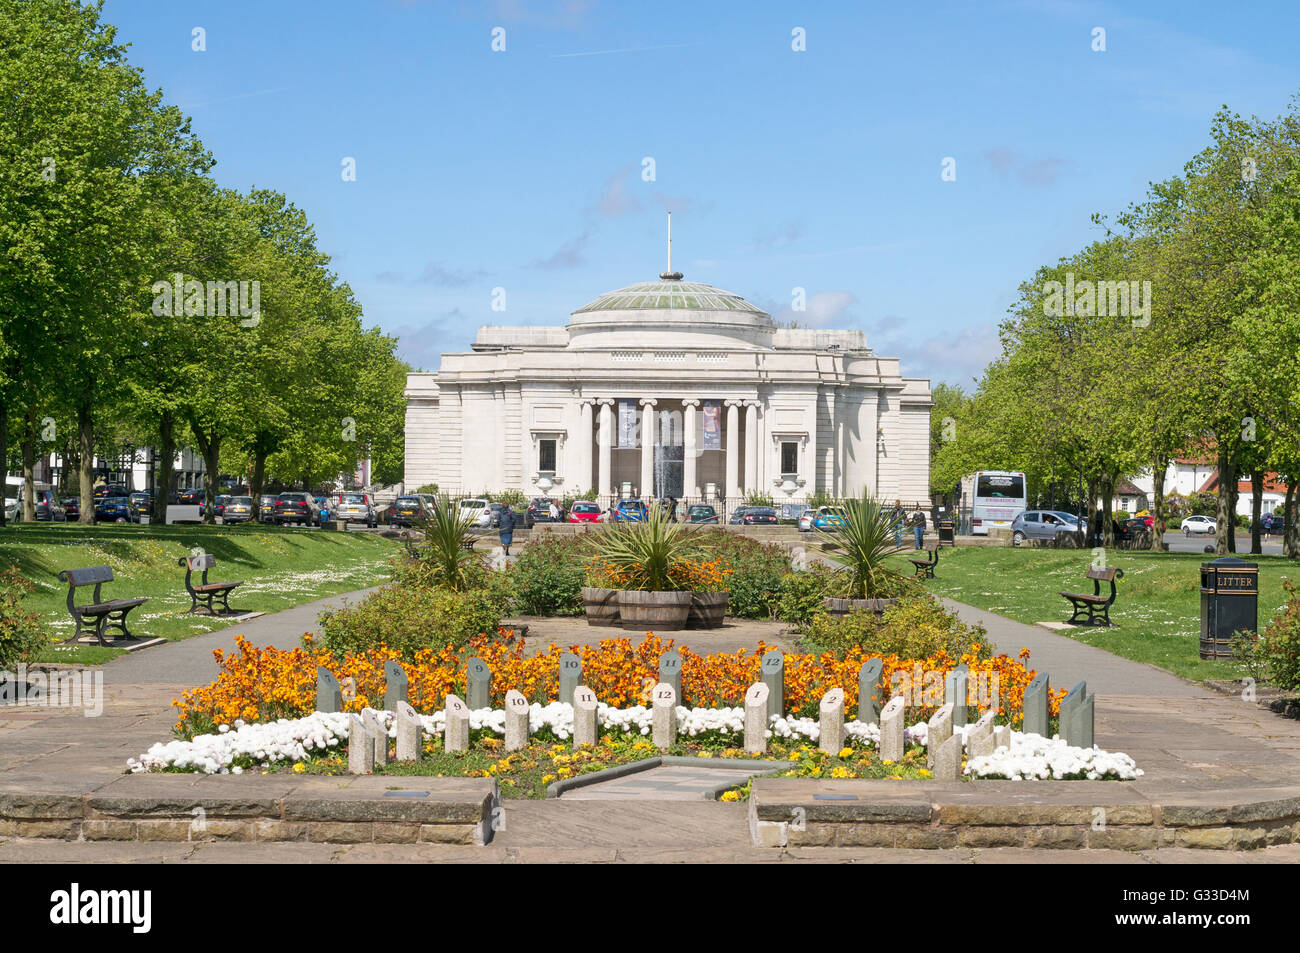 The analemmatic sundial and the Lady Lever art gallery building  Port Sunlight , Merseyside, England, UK - Stock Image